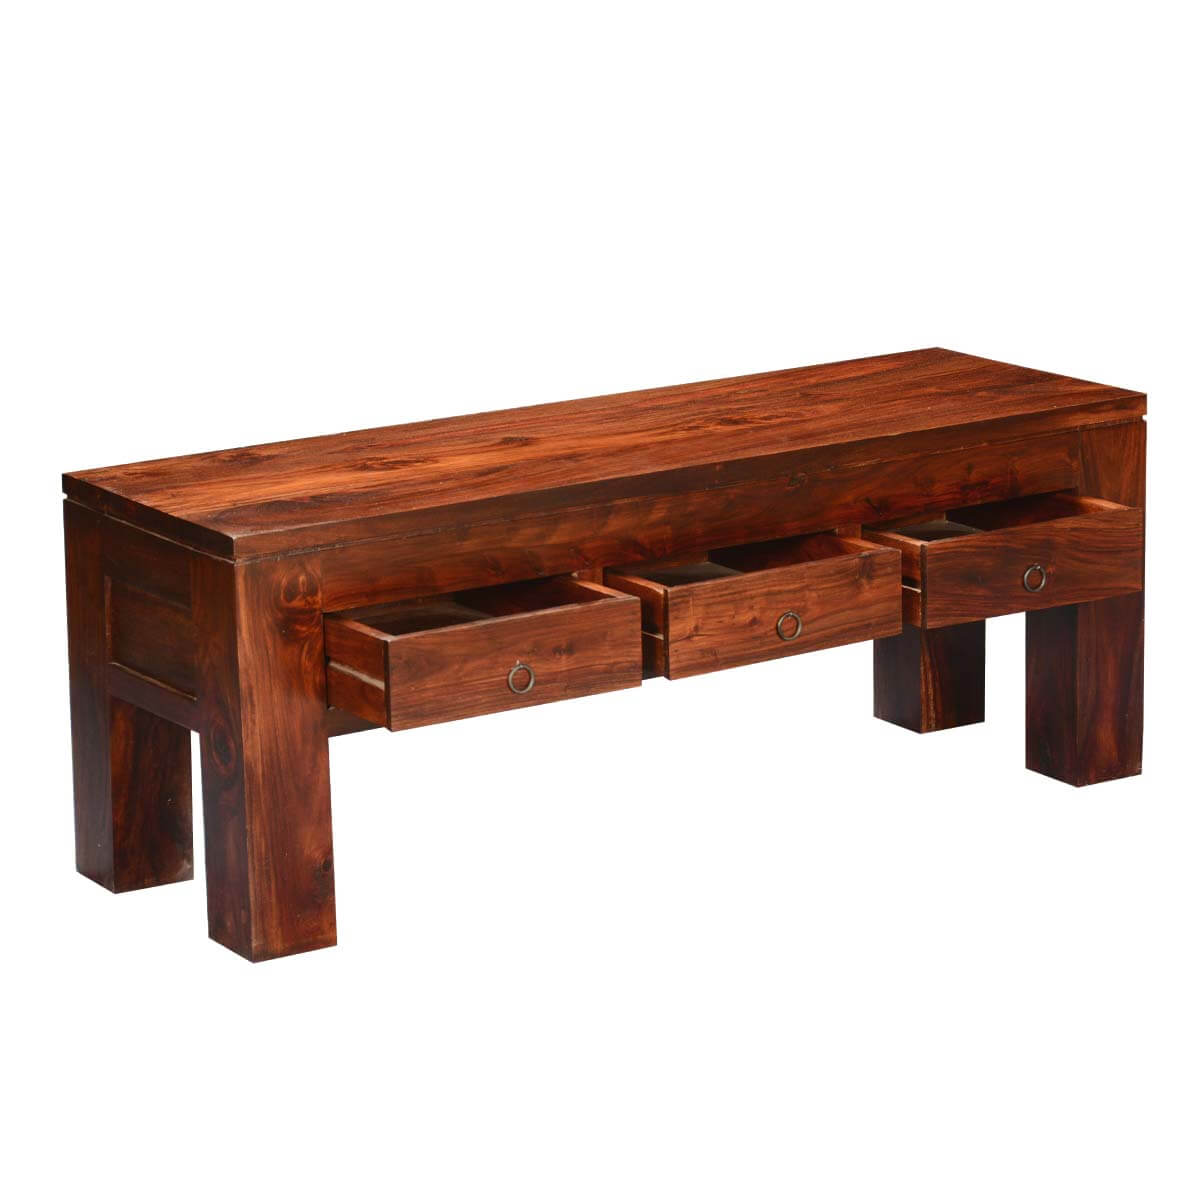 Mission modern solid wood hidden drawers coffee table for Solid wood coffee table